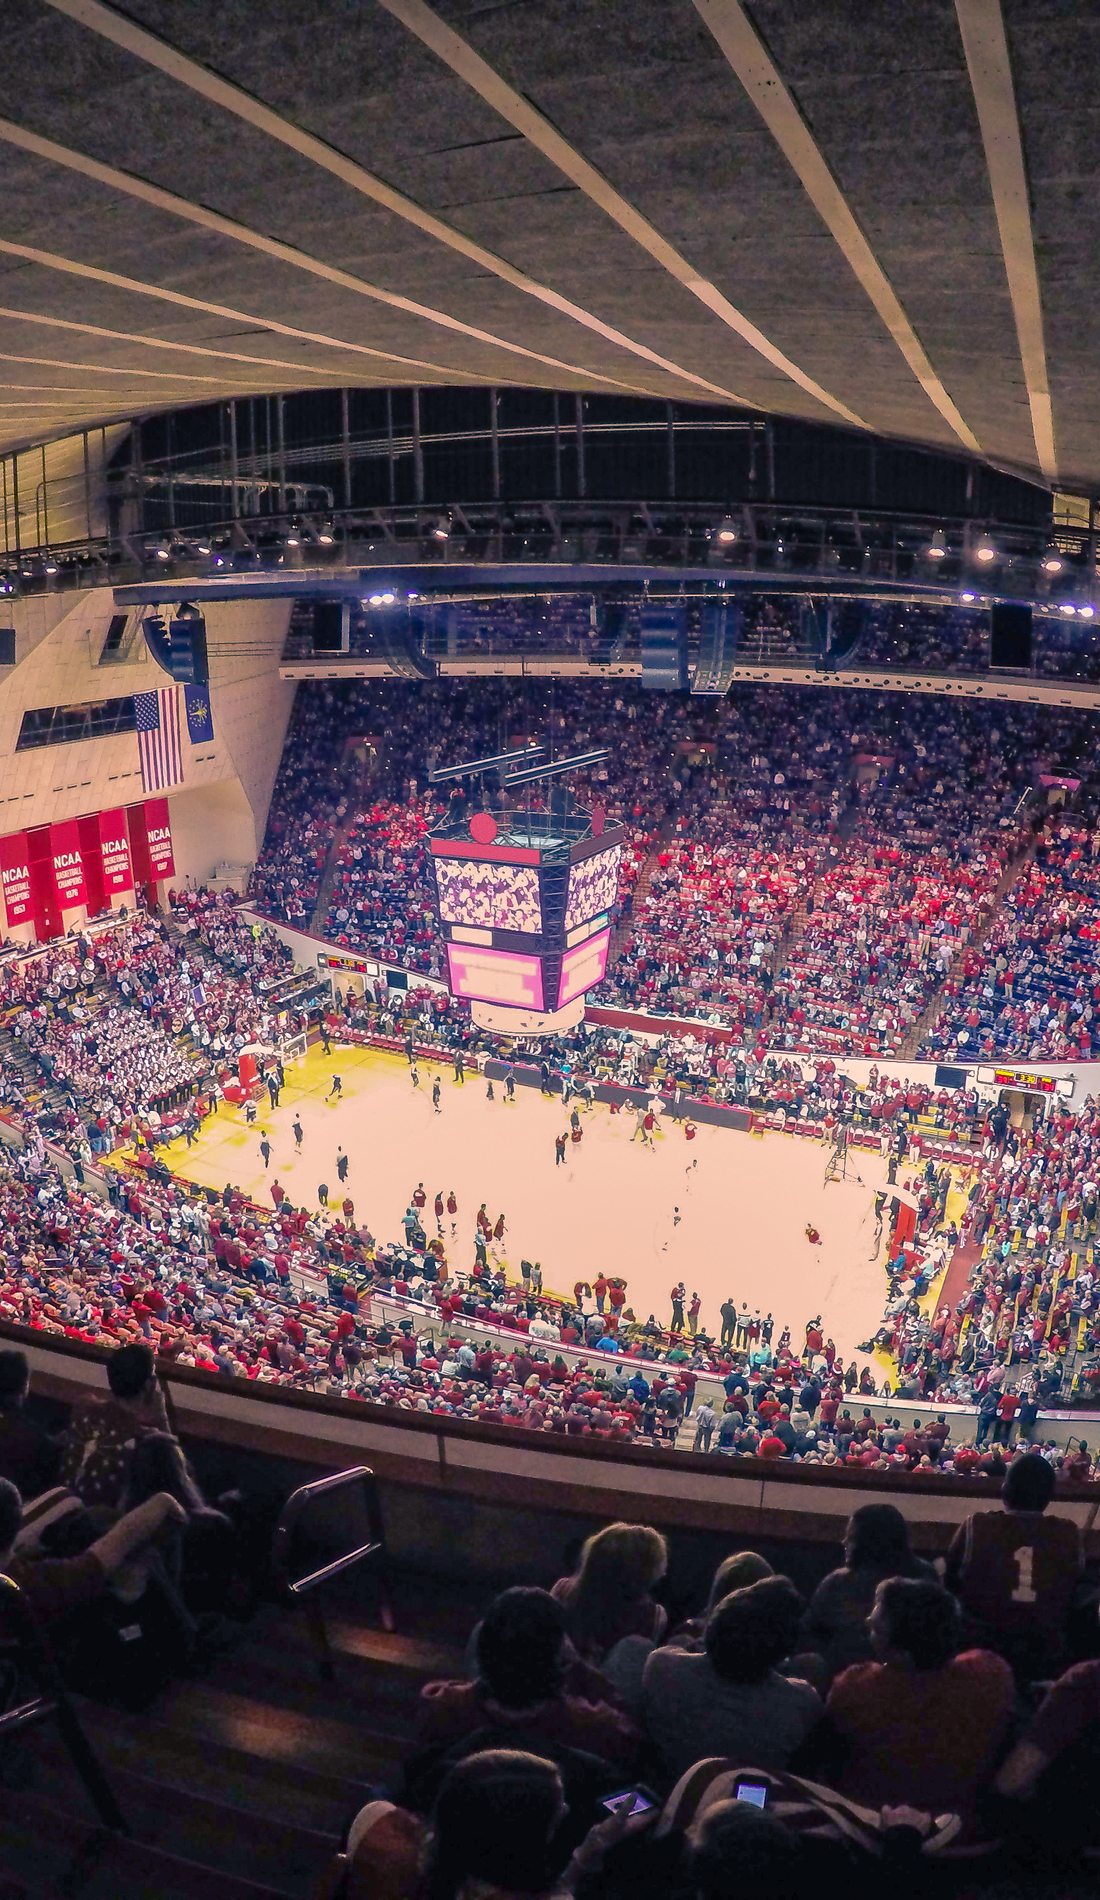 A Indiana Hoosiers Basketball live event